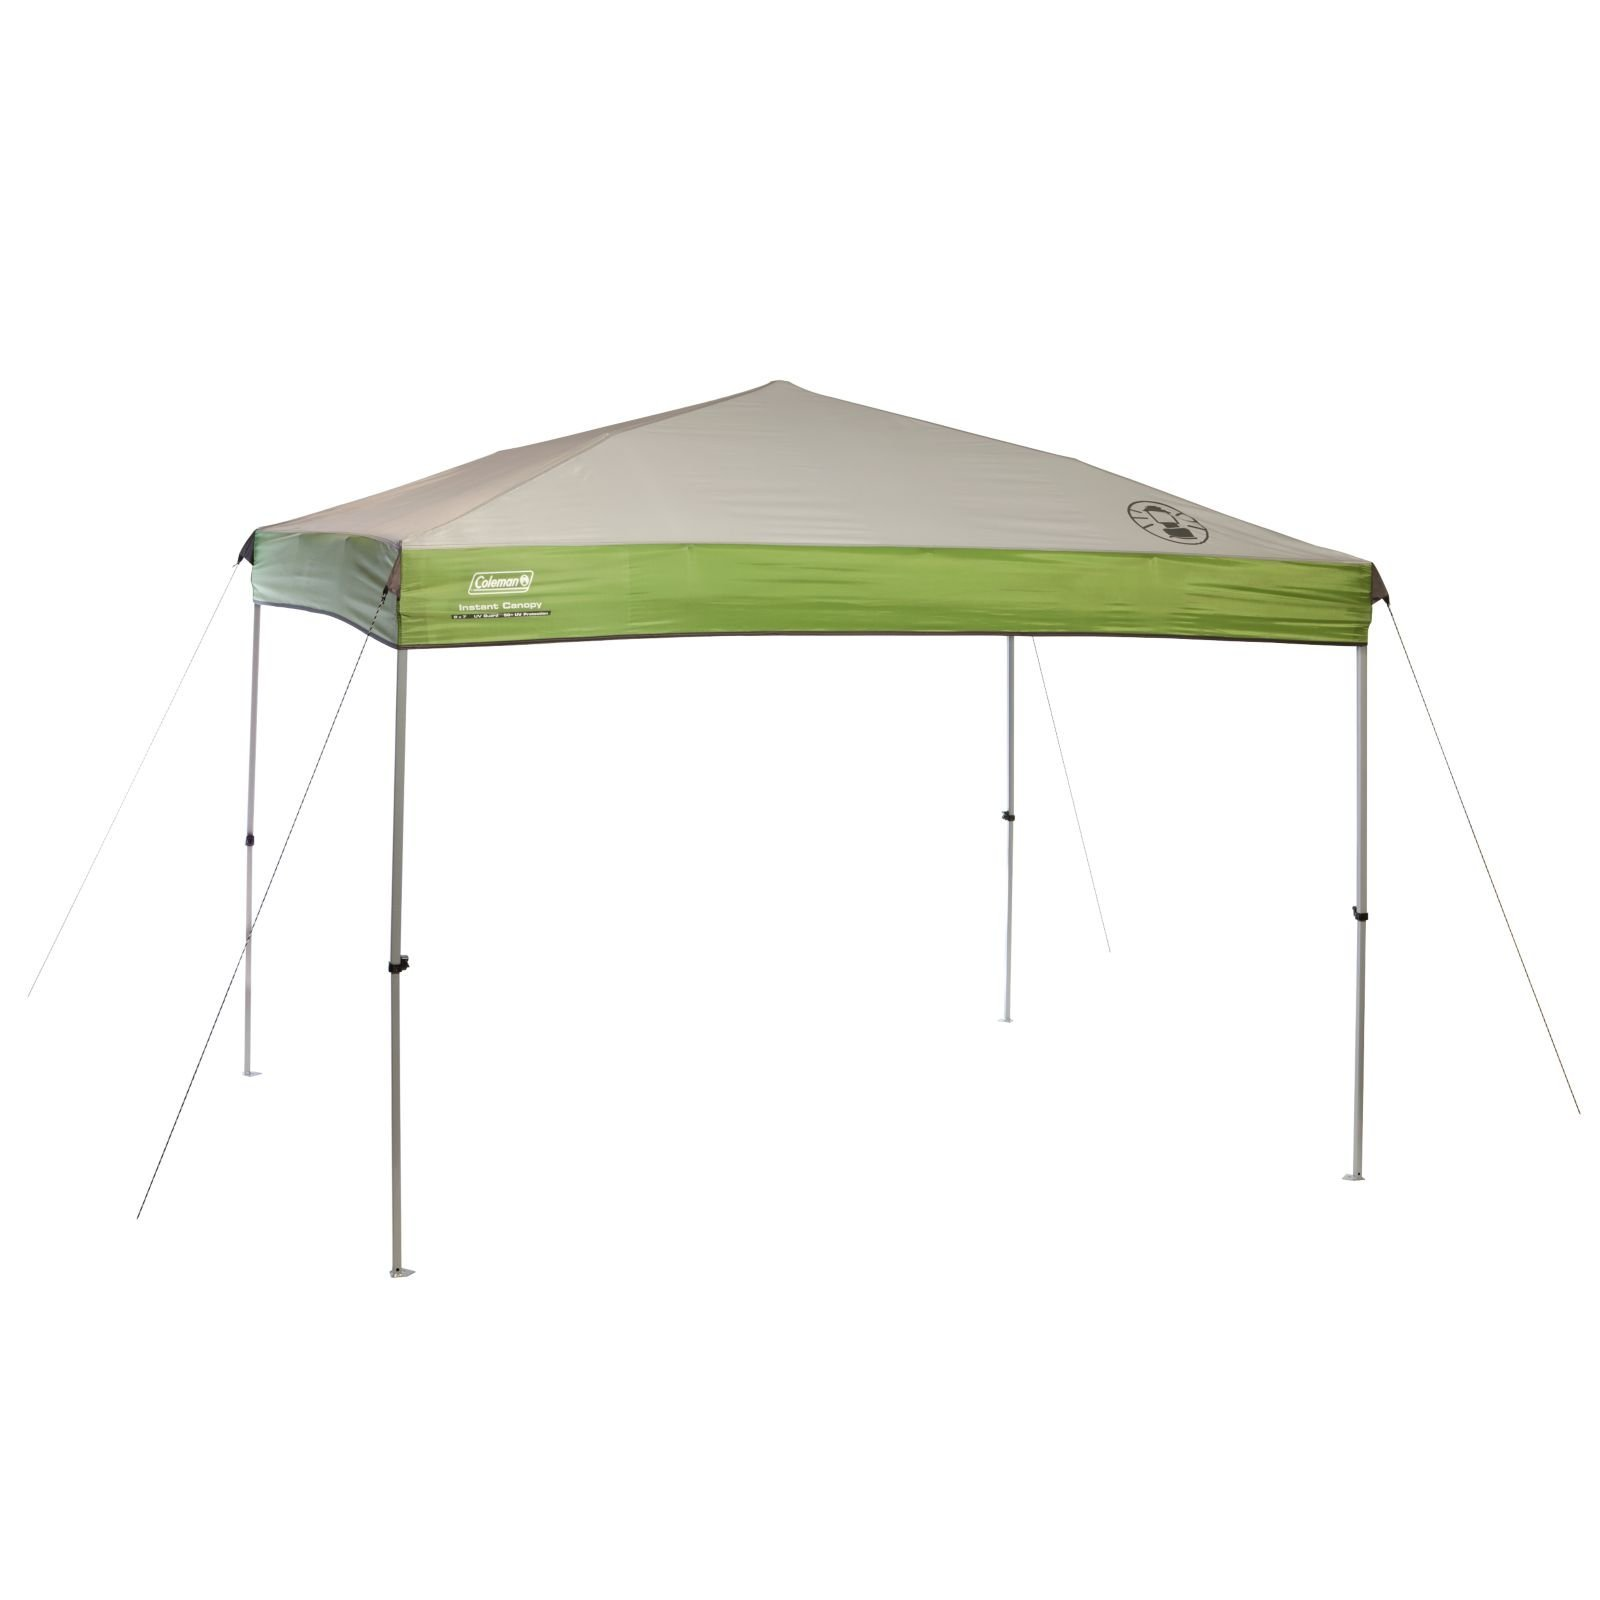 Coleman 9 x 7 ft. Instant Canopy by Coleman